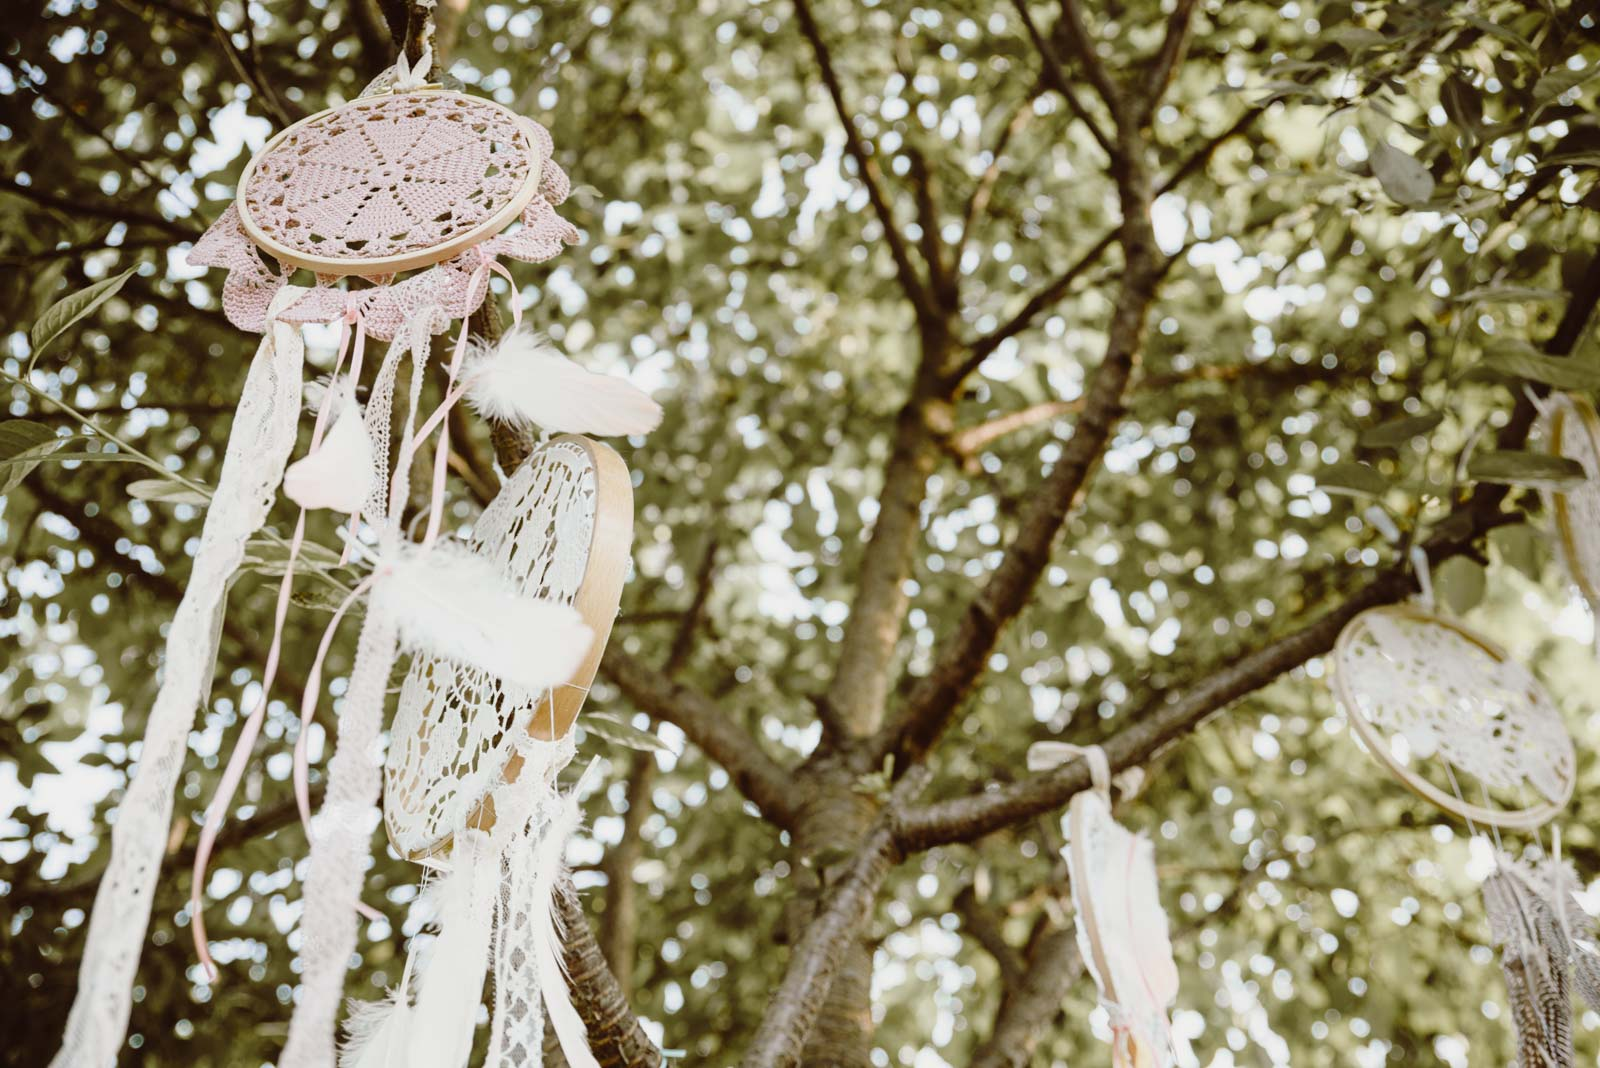 DIY-Dreamcatcher-Boho-Wedding-Dekoration-Traumfaenger-Hochzeitsdekoration-27